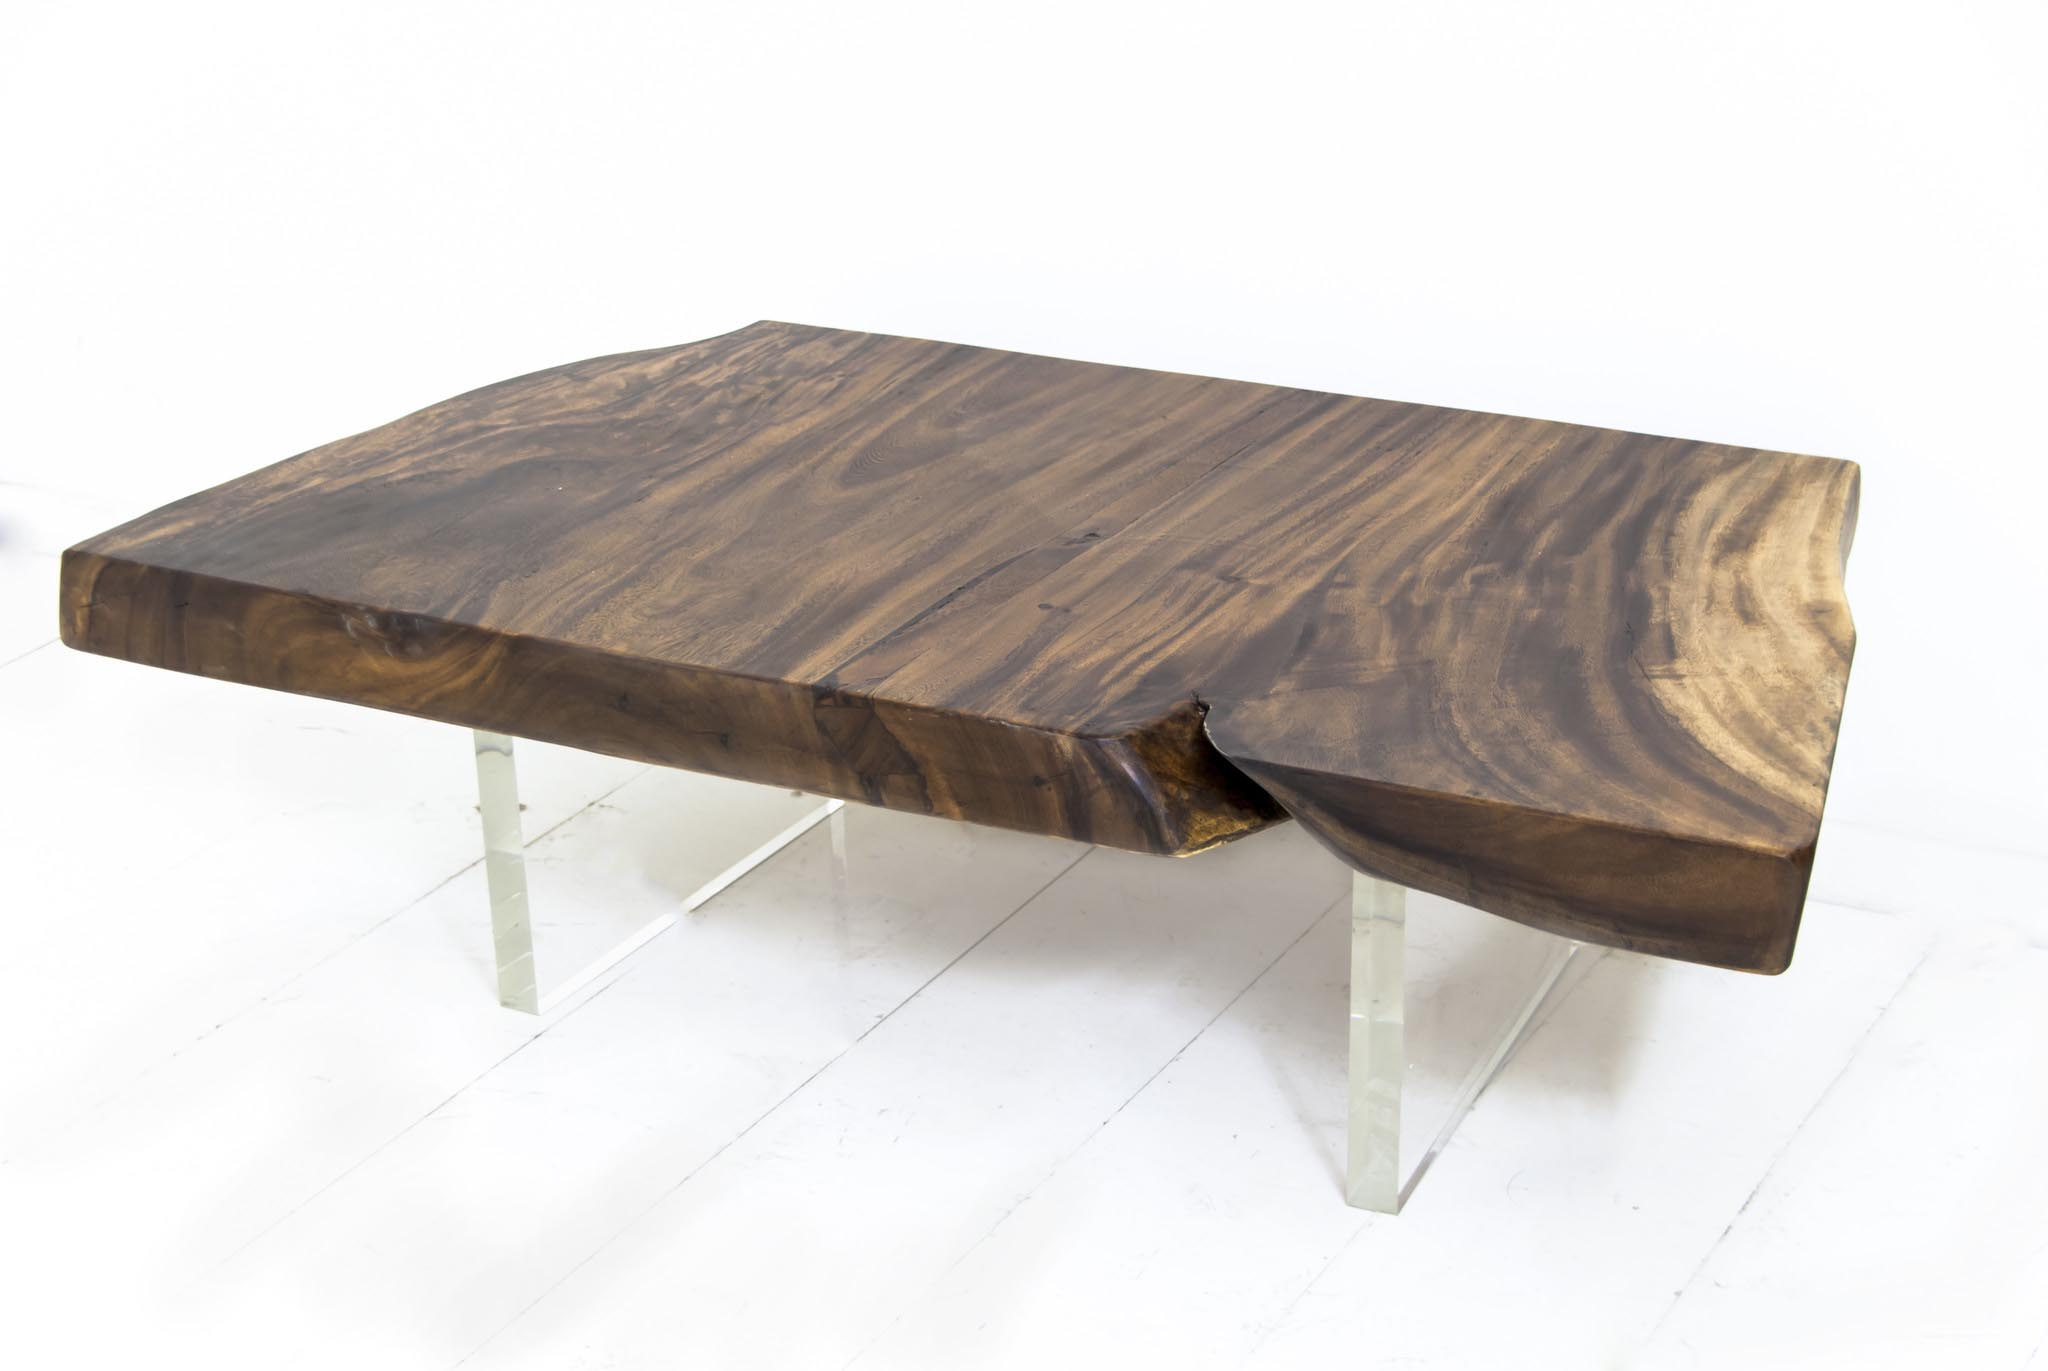 Acacia wood slab coffee table coffee table design ideas for Wood slab coffee table